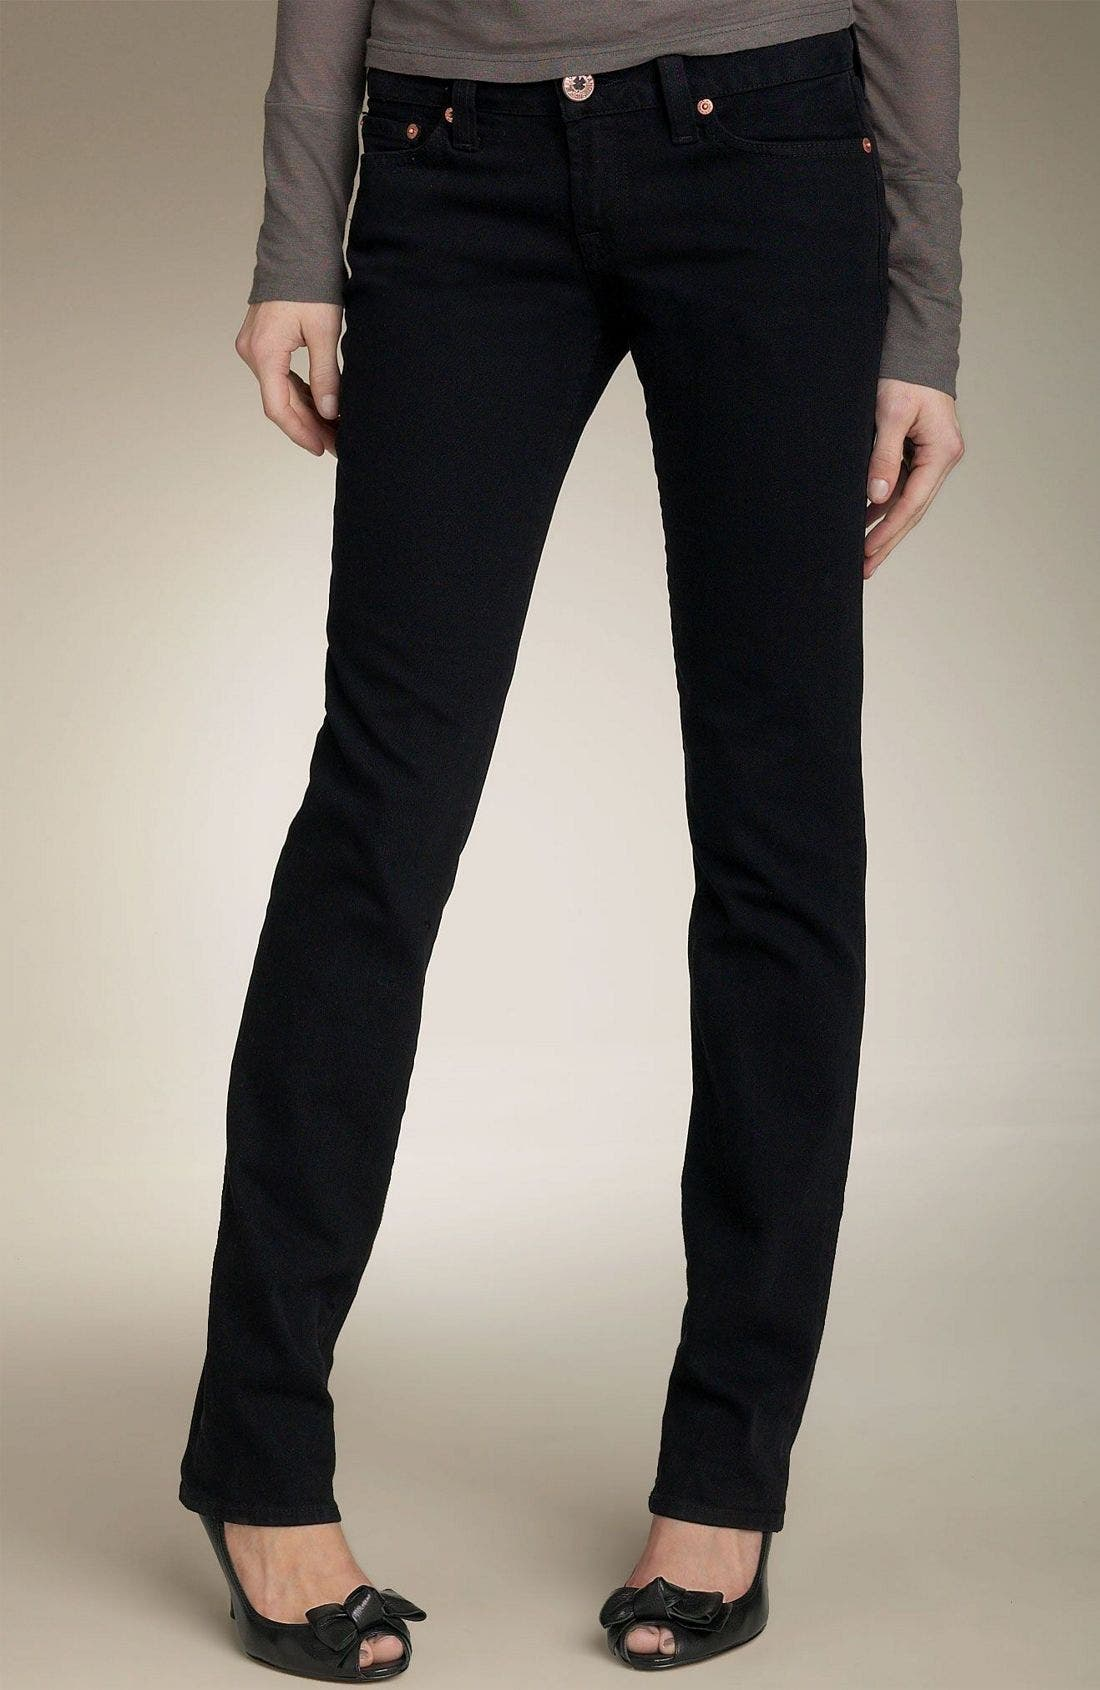 'Lola' Skinny Stretch Jeans,                             Main thumbnail 1, color,                             JET